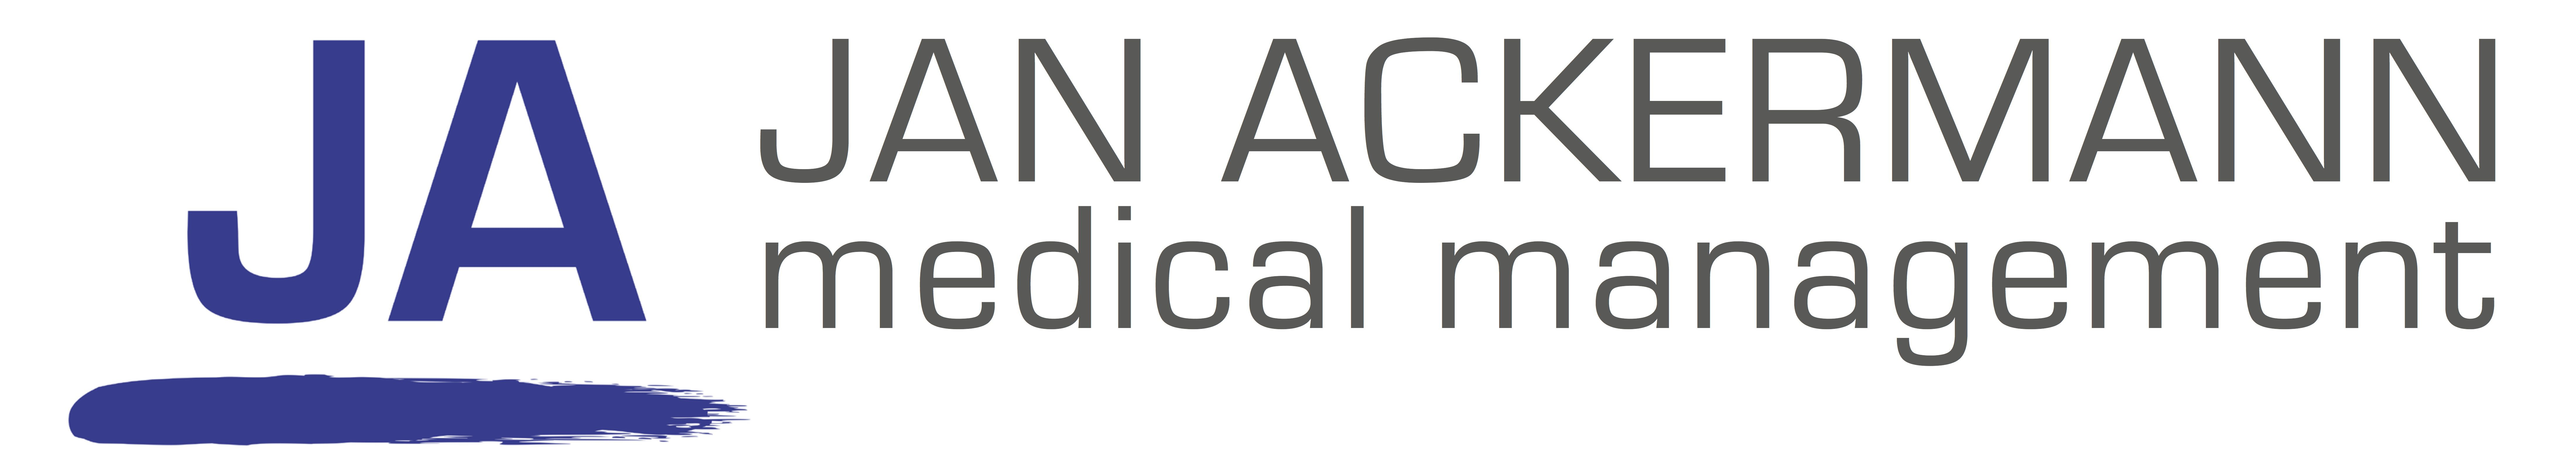 JAN ACKERMANN medical management